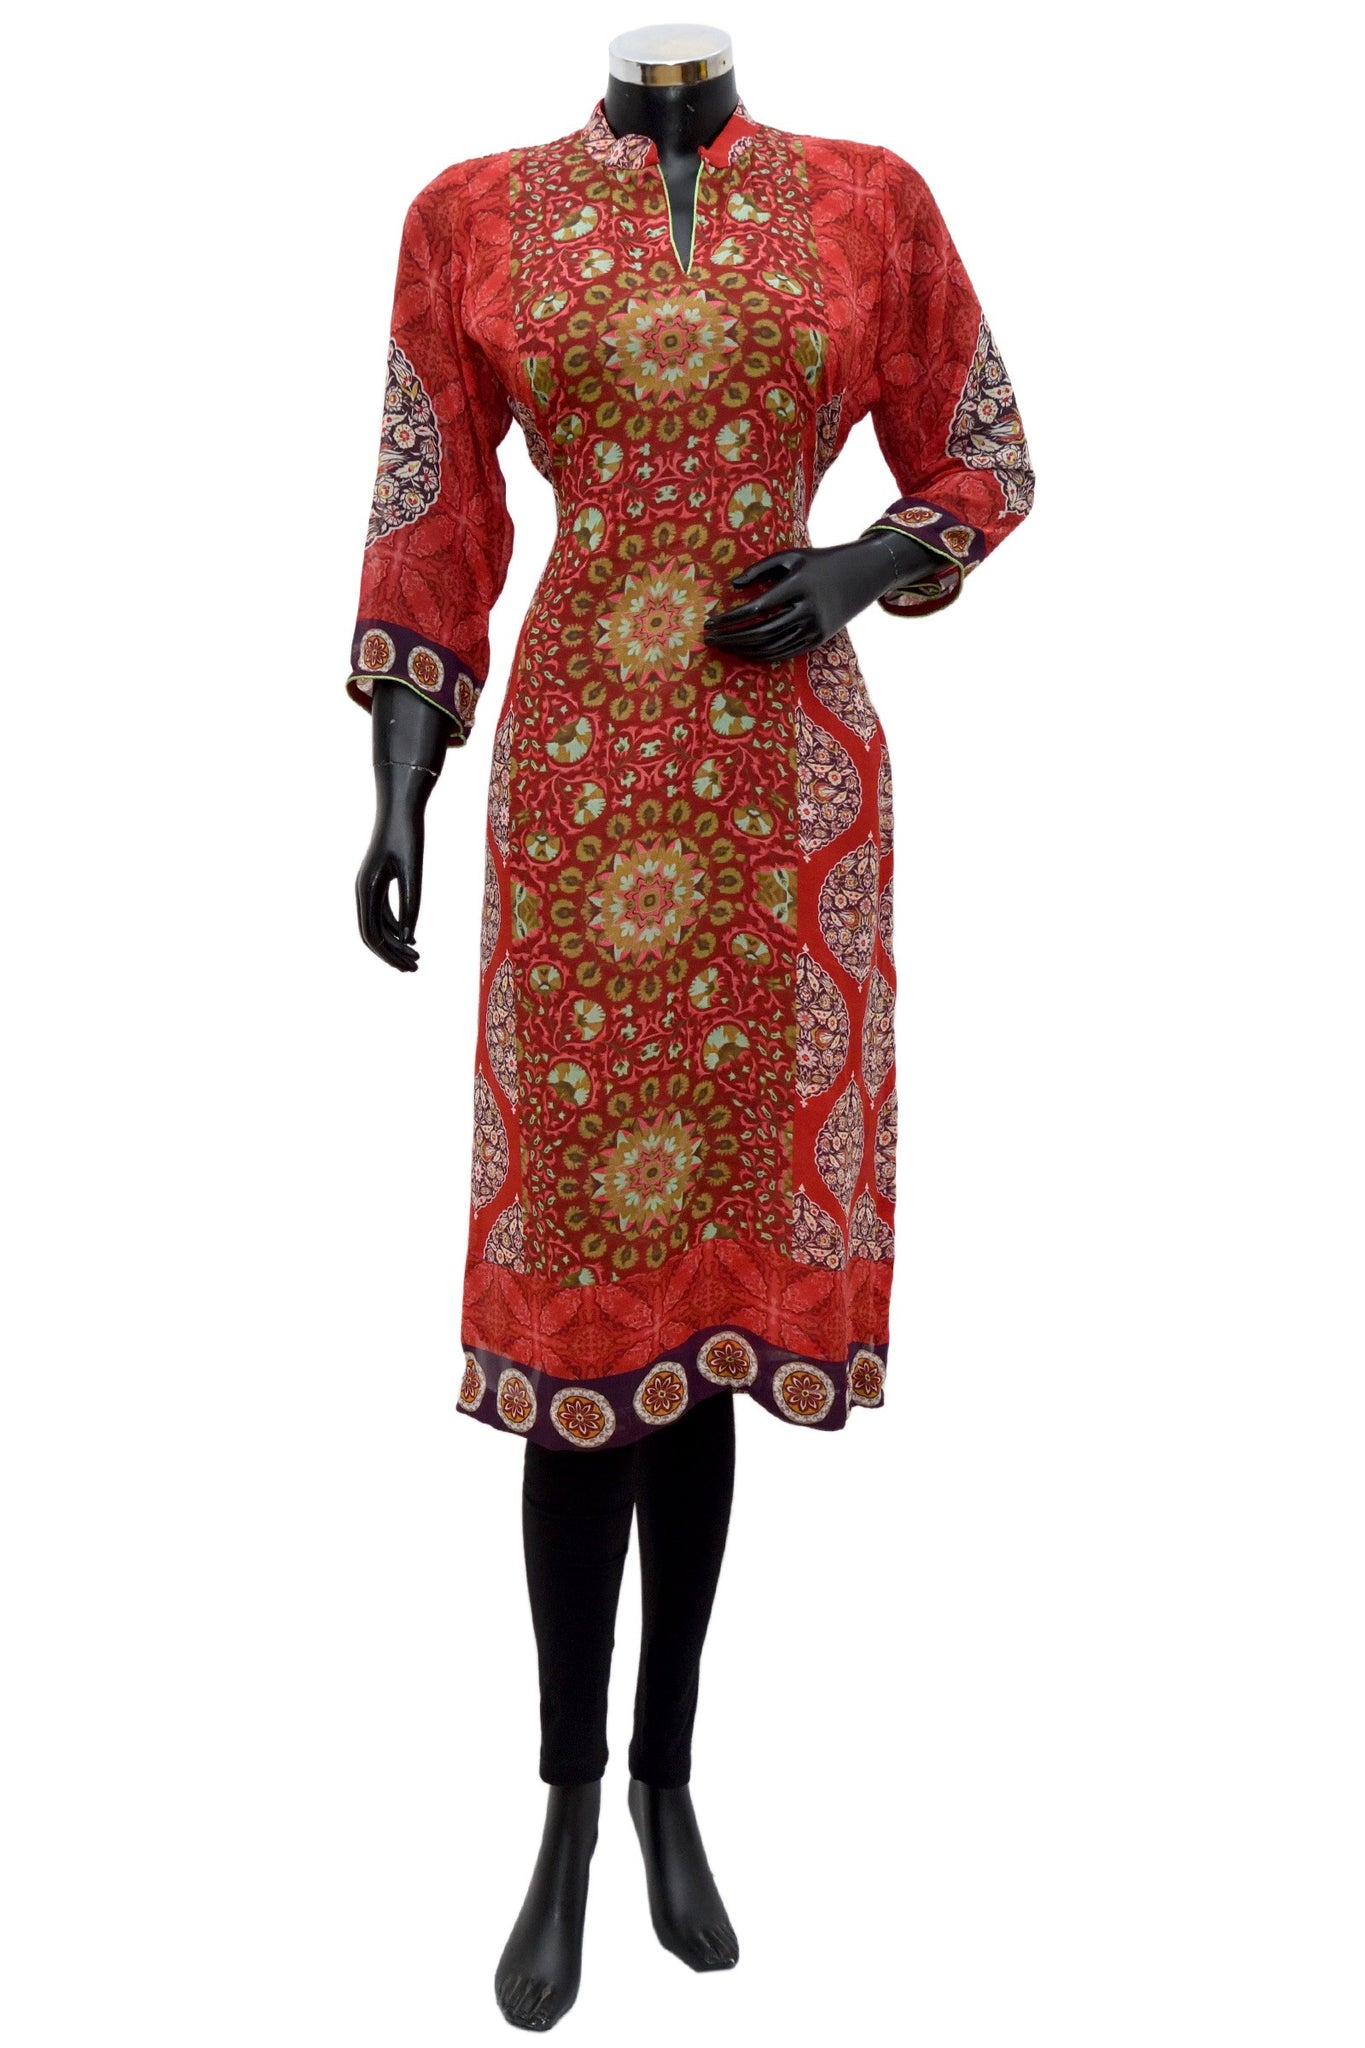 A printed kurta in red #fdn650-131